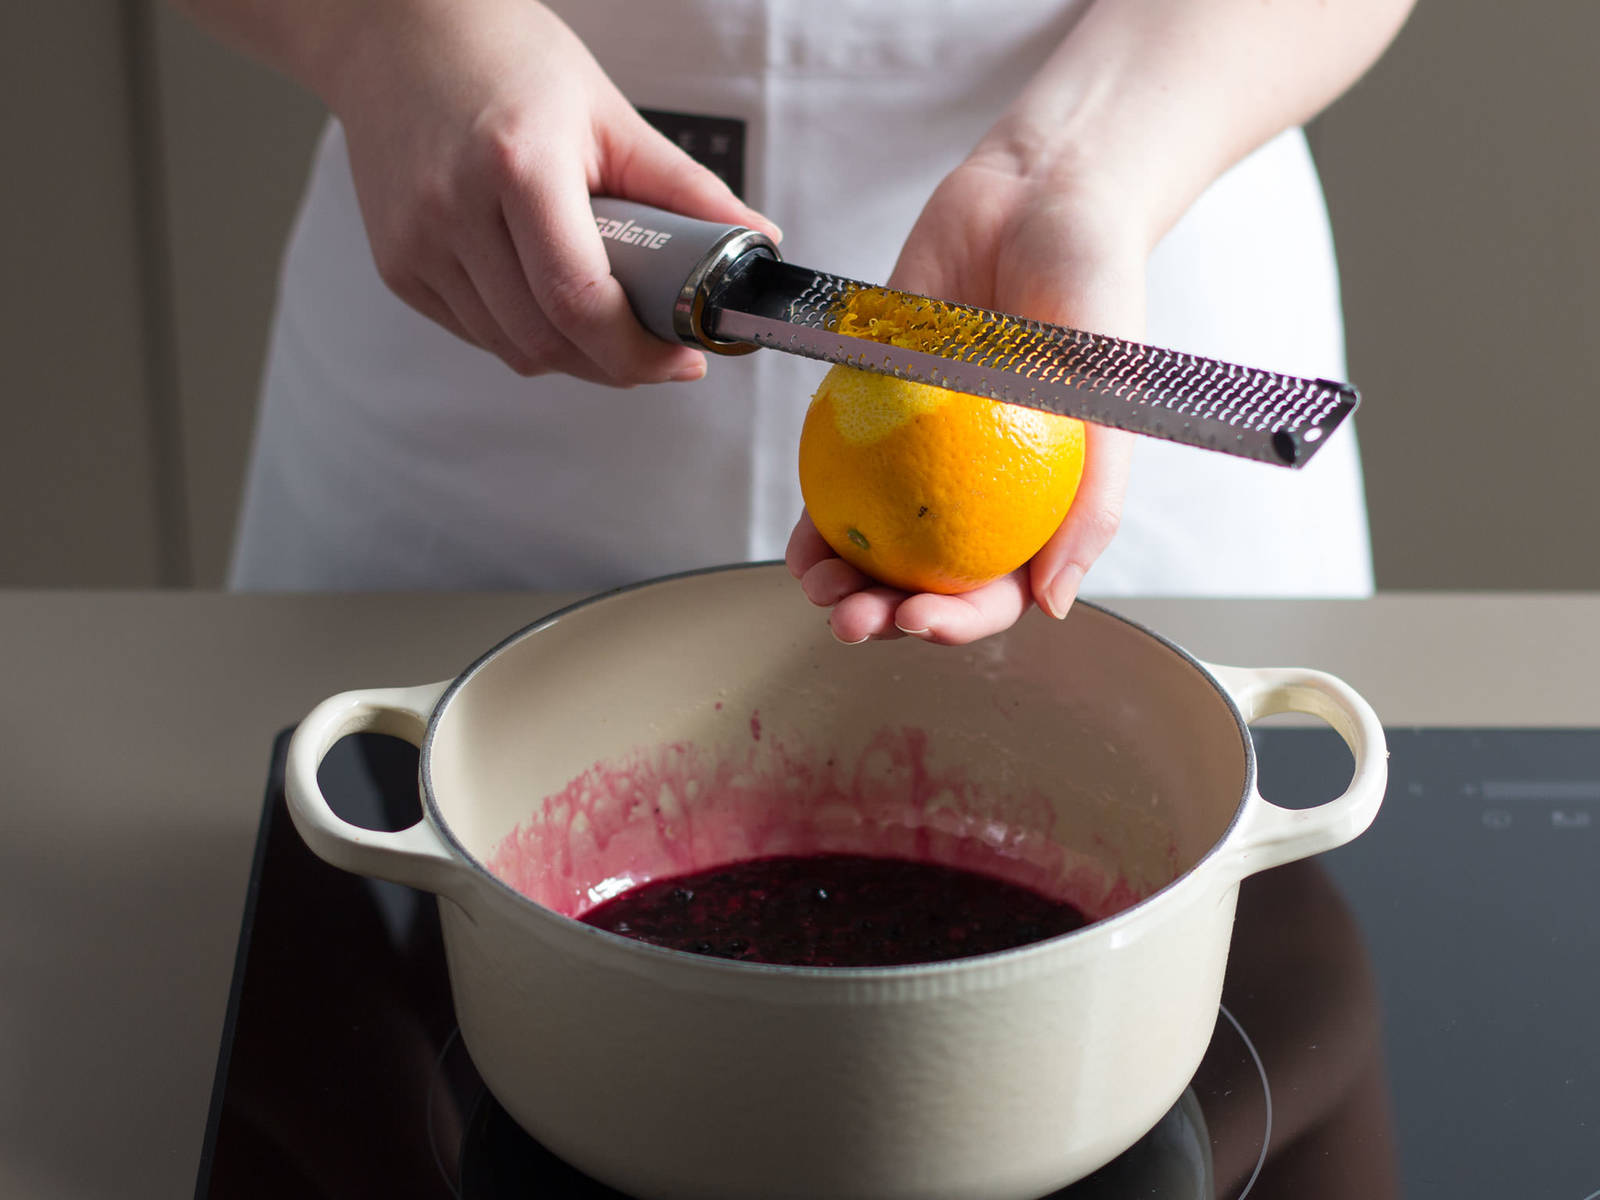 For the blueberry sauce, caramelize remainder of sugar in a large saucepan over medium-low heat for approx. 3 – 5 min., stirring constantly. Deglaze with lemon and orange juice. Then, add frozen blueberries, remainder of vanilla pod, and zest from lemon and orange and continue to cook for approx. 5 – 7 min. until sauce thickens.